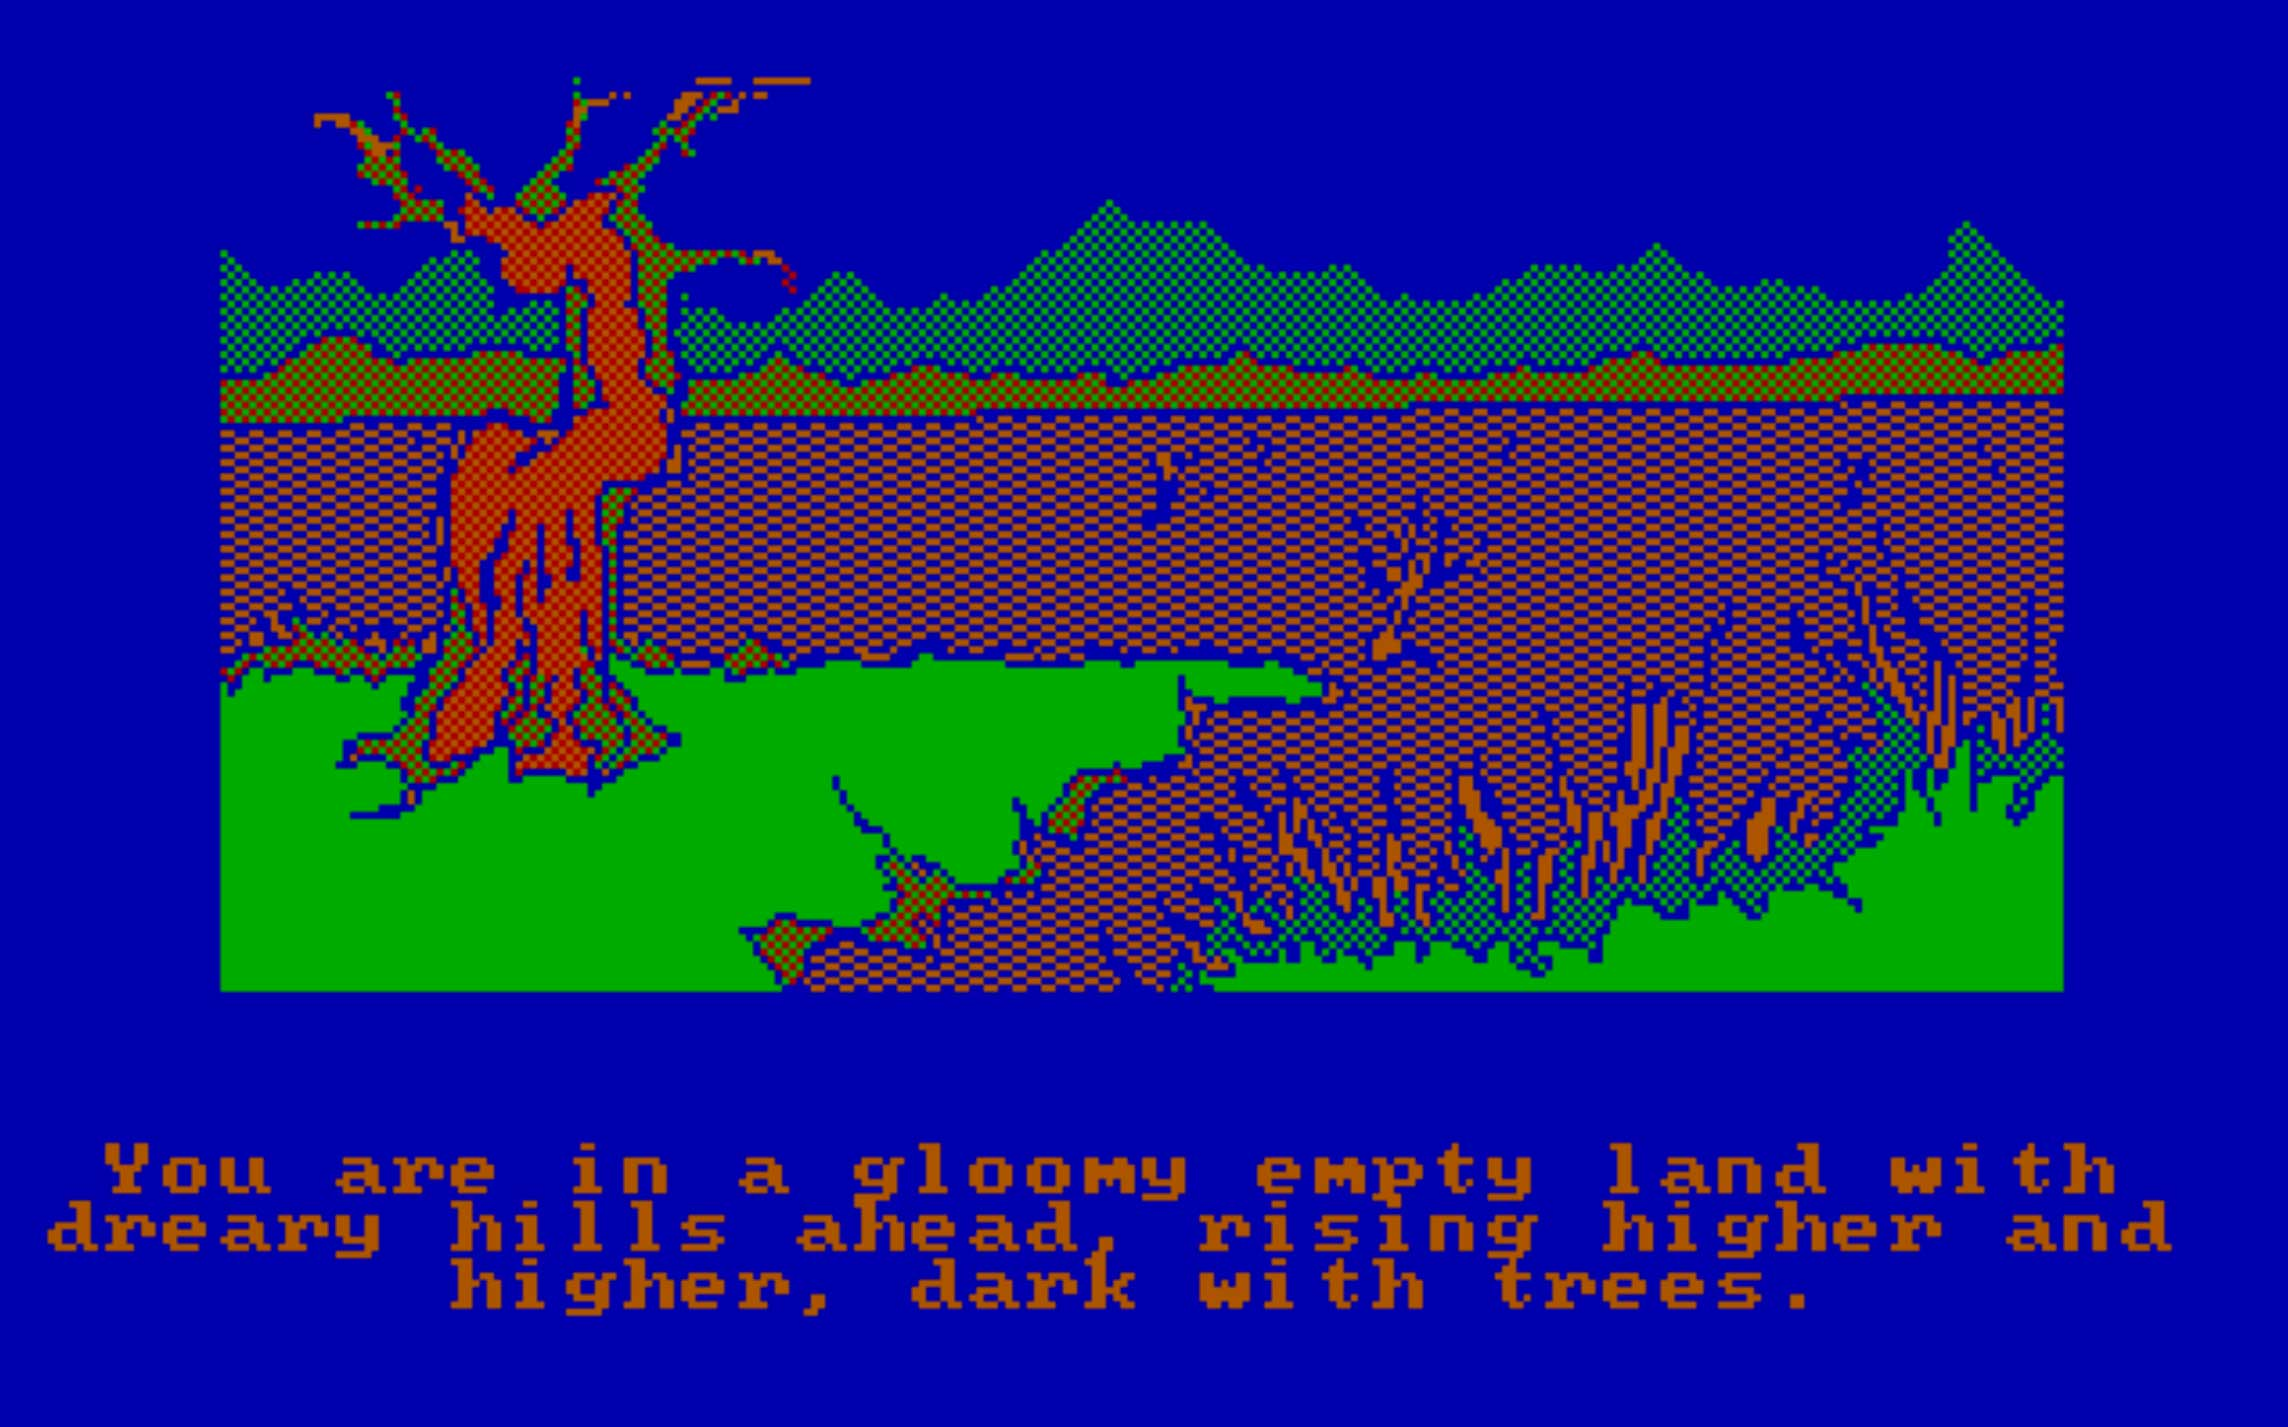 "<a href=""https://archive.org/details/msdos_Hobbit_The_1983"" target=""_blank""><strong>The Hobbit (1983)</strong></a>                                                                      Open door. Go East. Enjoy game. If you want to go really old school, you can turn the graphics off in this                                     text-based game, guiding Bilbo through Middle Earth using only your imagination as your eyes."